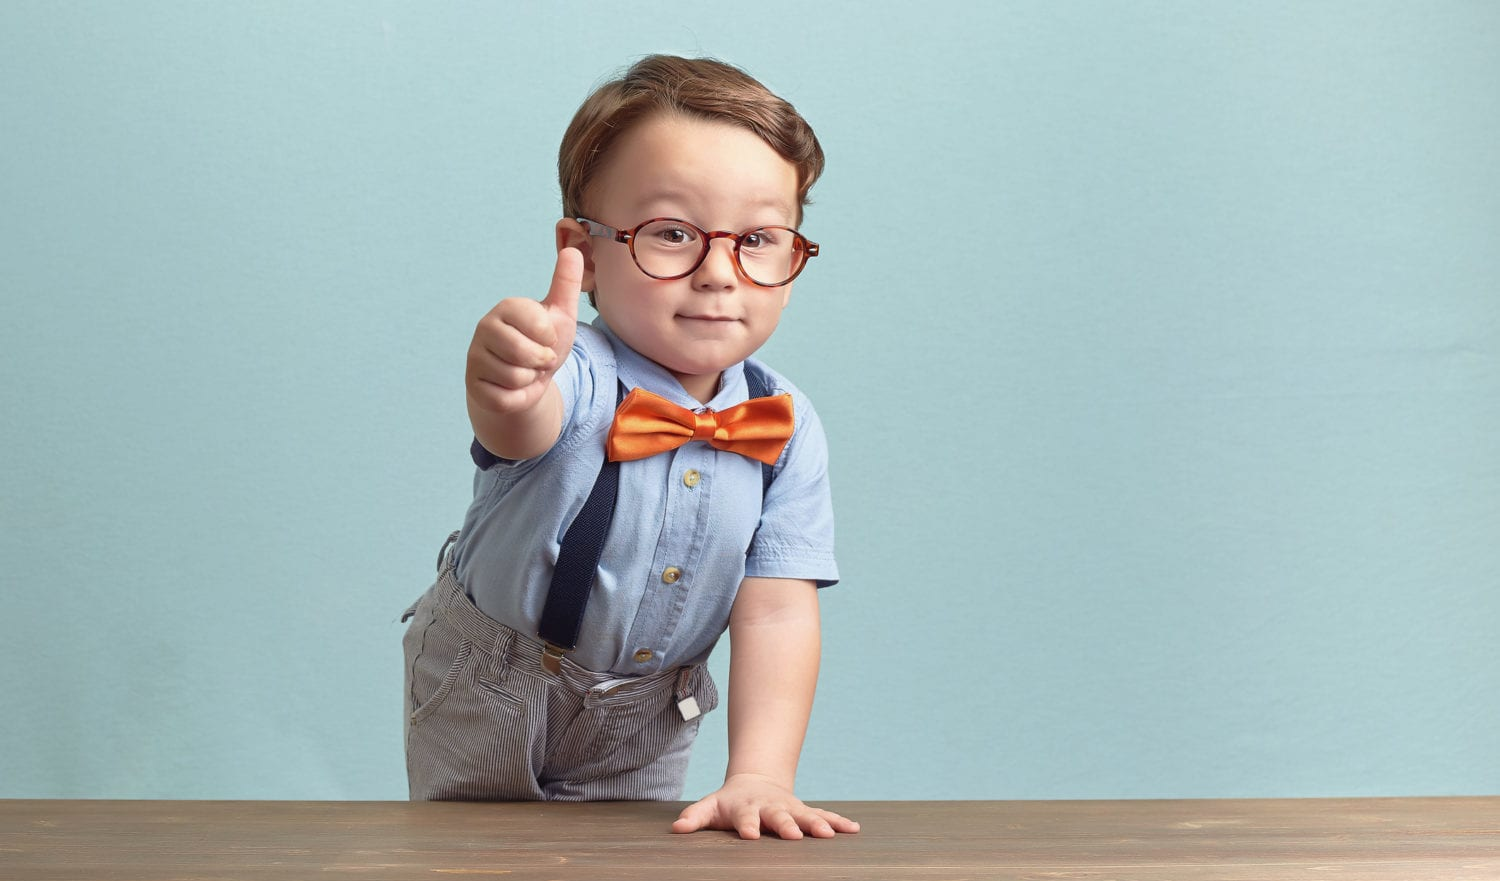 Around three years old boy in an orange bow tie and glasses, wearing blue shirt. He is smiling while giving you thumbs up over baby-blue backgorund, behind the brown table, left hand up on the table. Photo was taken by Canon DSLR.